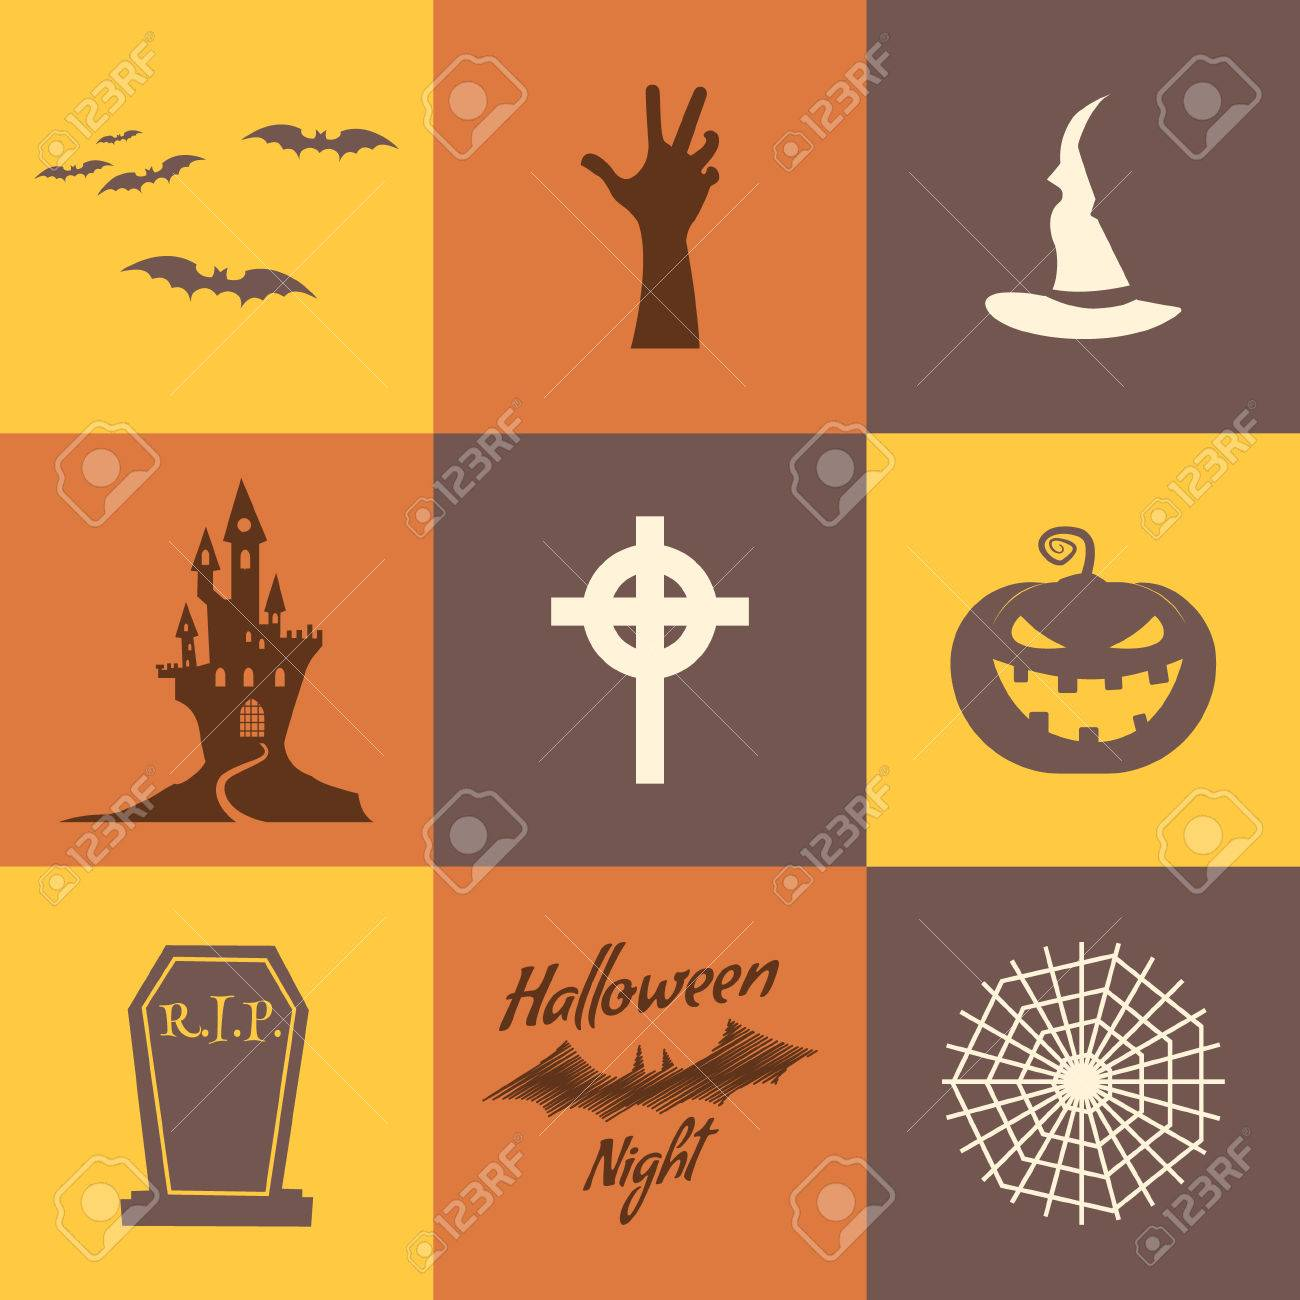 Set Of Halloween Icons Isolate On Multicolor Backgrounds Flat